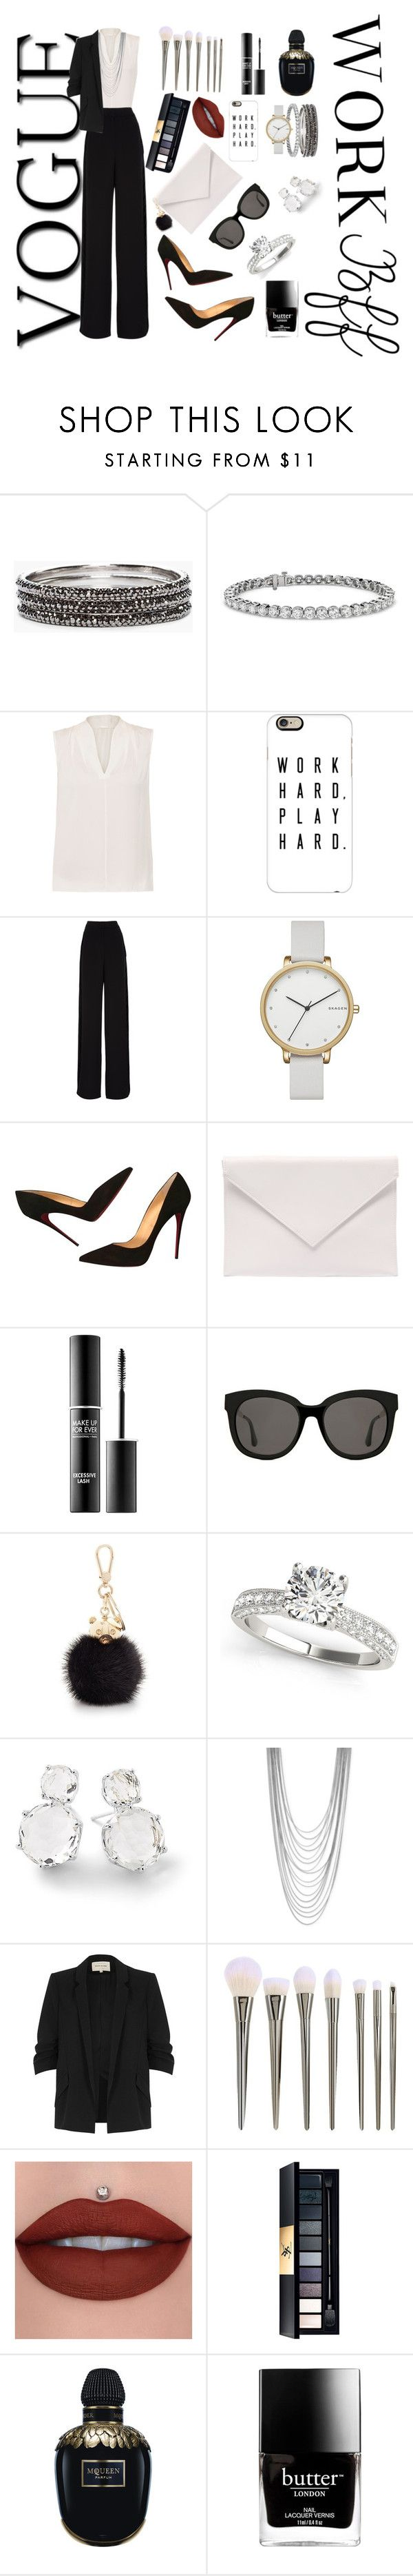 """Office"" by tamazyananna ❤ liked on Polyvore featuring Chico's, Blue Nile, Elie Tahari, Casetify, Rochas, Skagen, Christian Louboutin, Verali, MAKE UP FOR EVER and Gentle Monster"